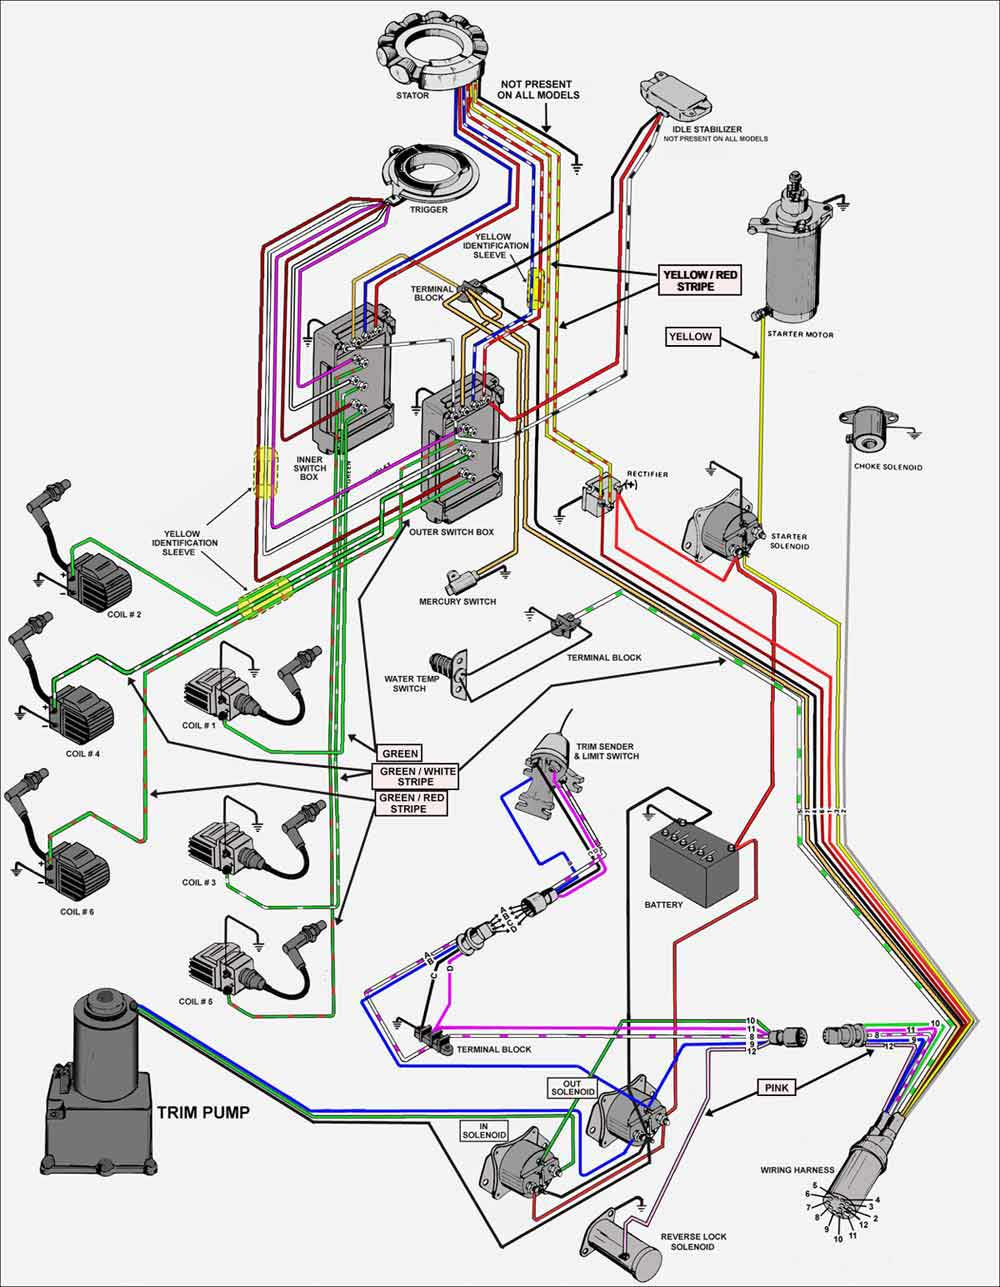 Mercury Wiring Diagram New Era Of Porsche Cayenne 2005 Fuse Box Location 200 Hp Outboard 20 Odicis